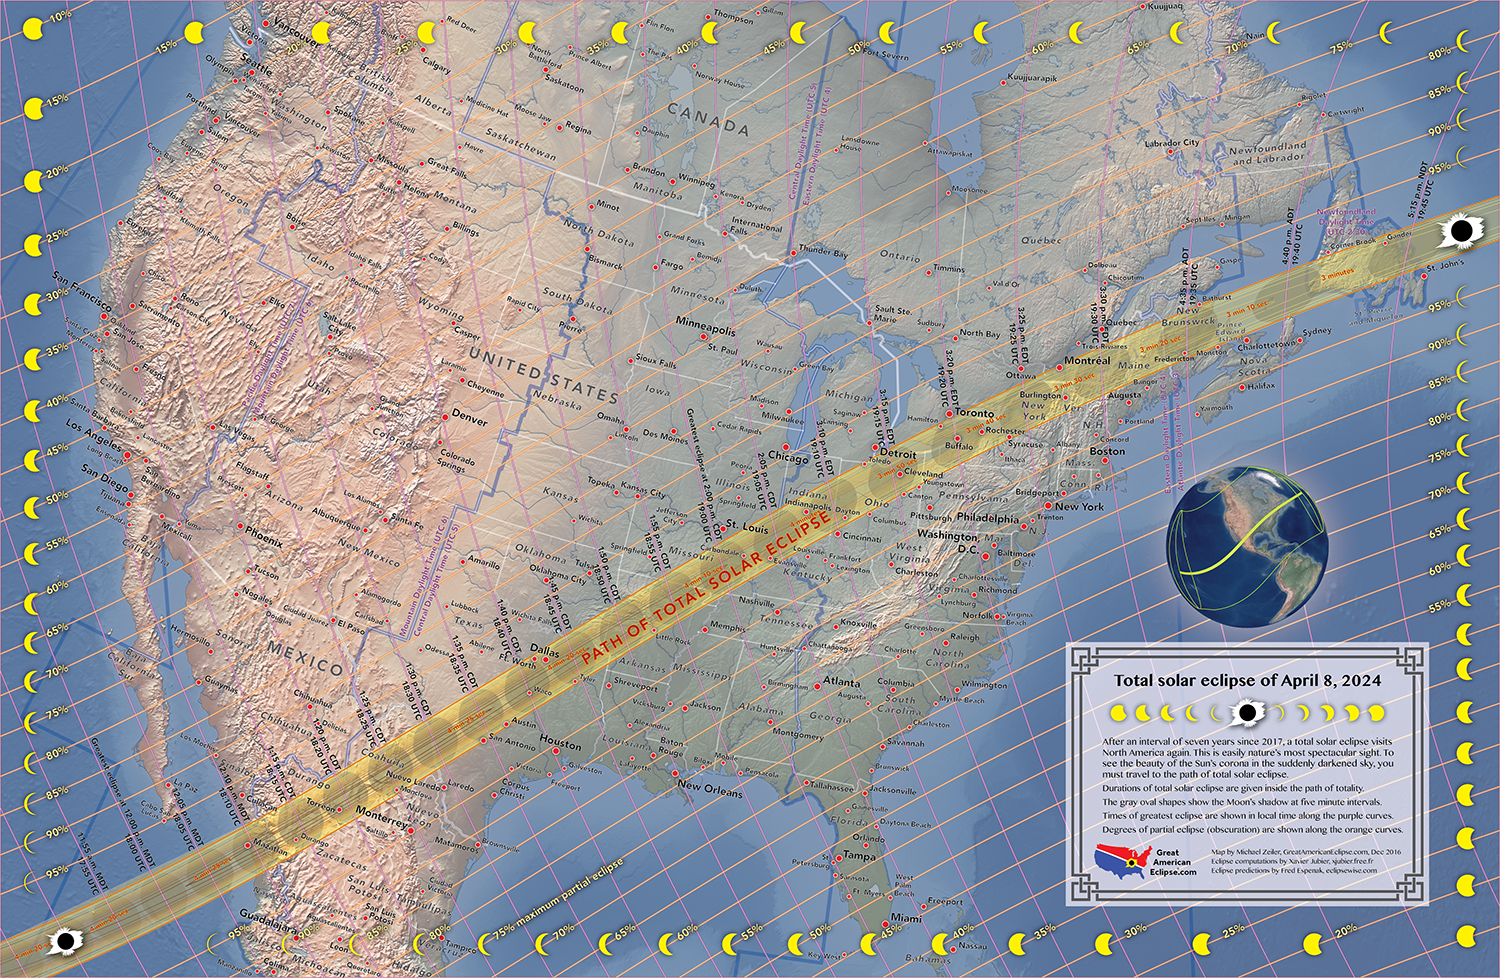 Our new map of the April 8, 2024 total solar eclipse. You can purchase this map at   www.GreatAmericanEclipse.com/Store/